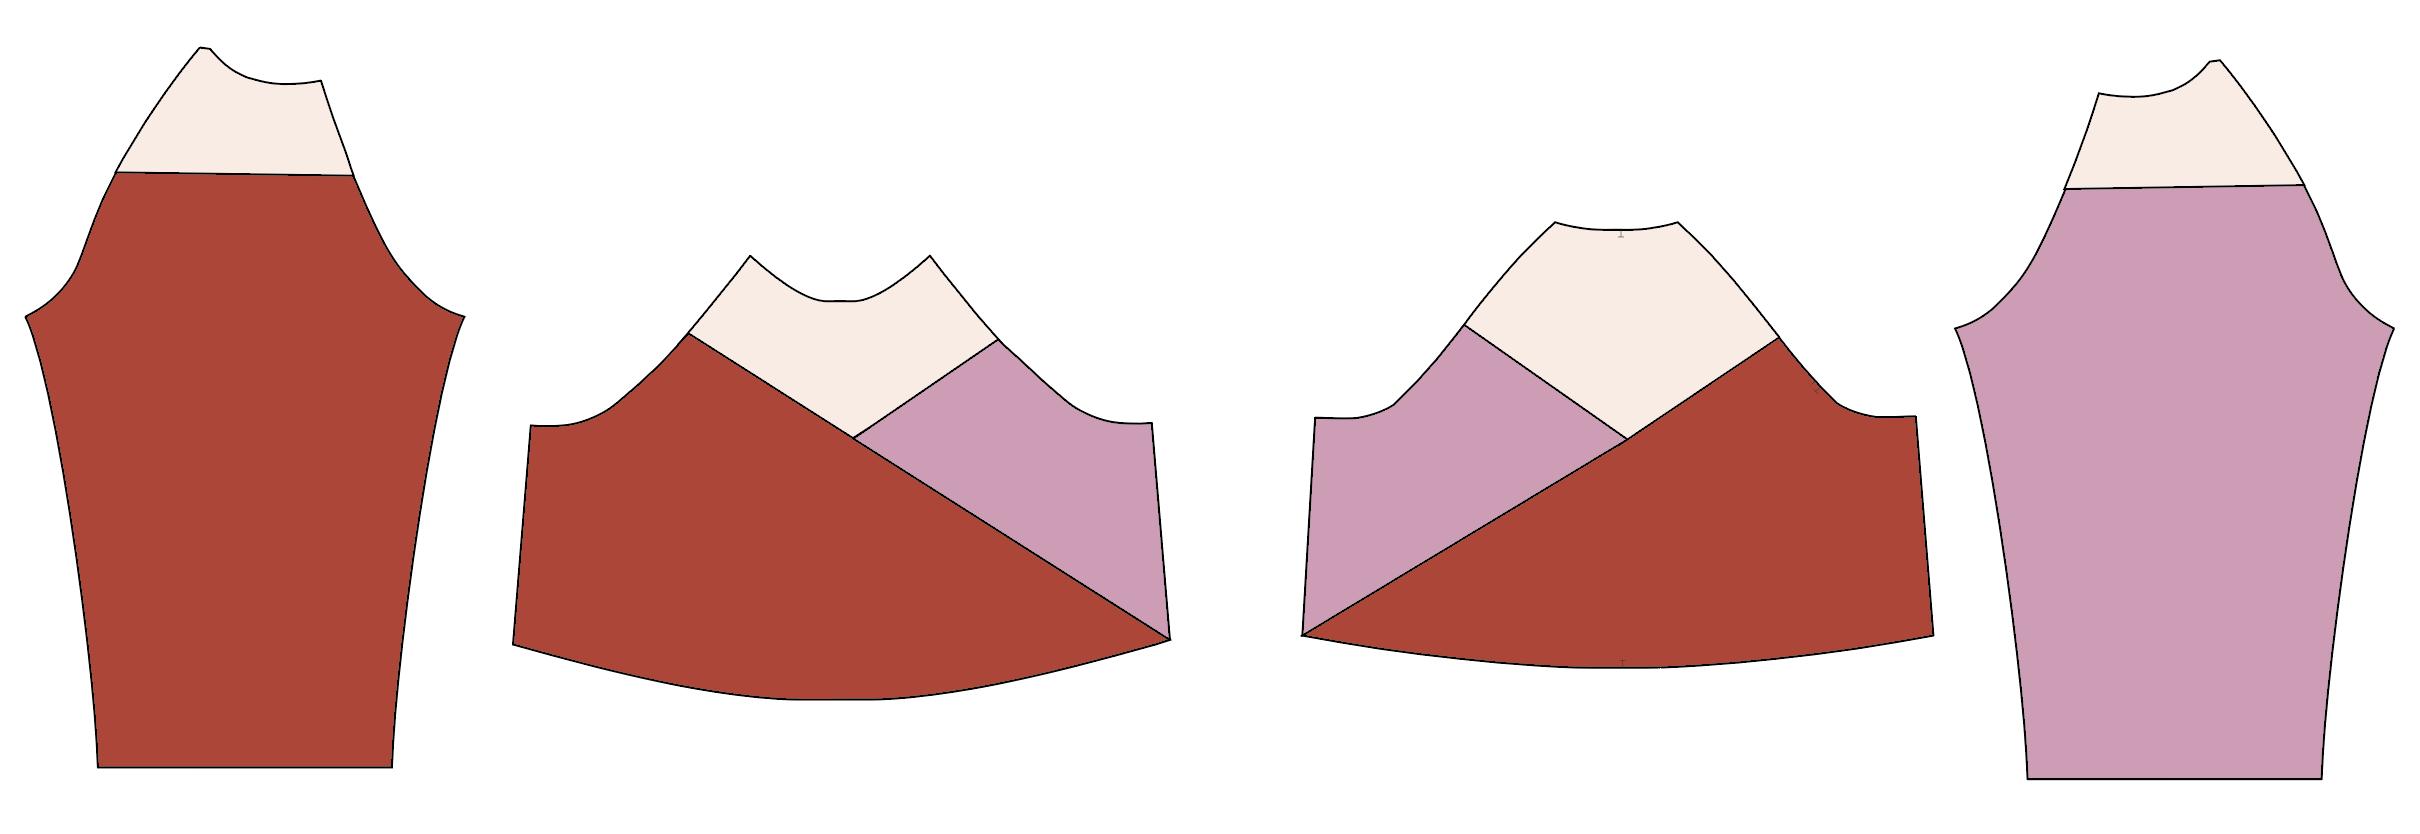 Illustration showing both sleeves, front, and back pattern pieces color-blocked